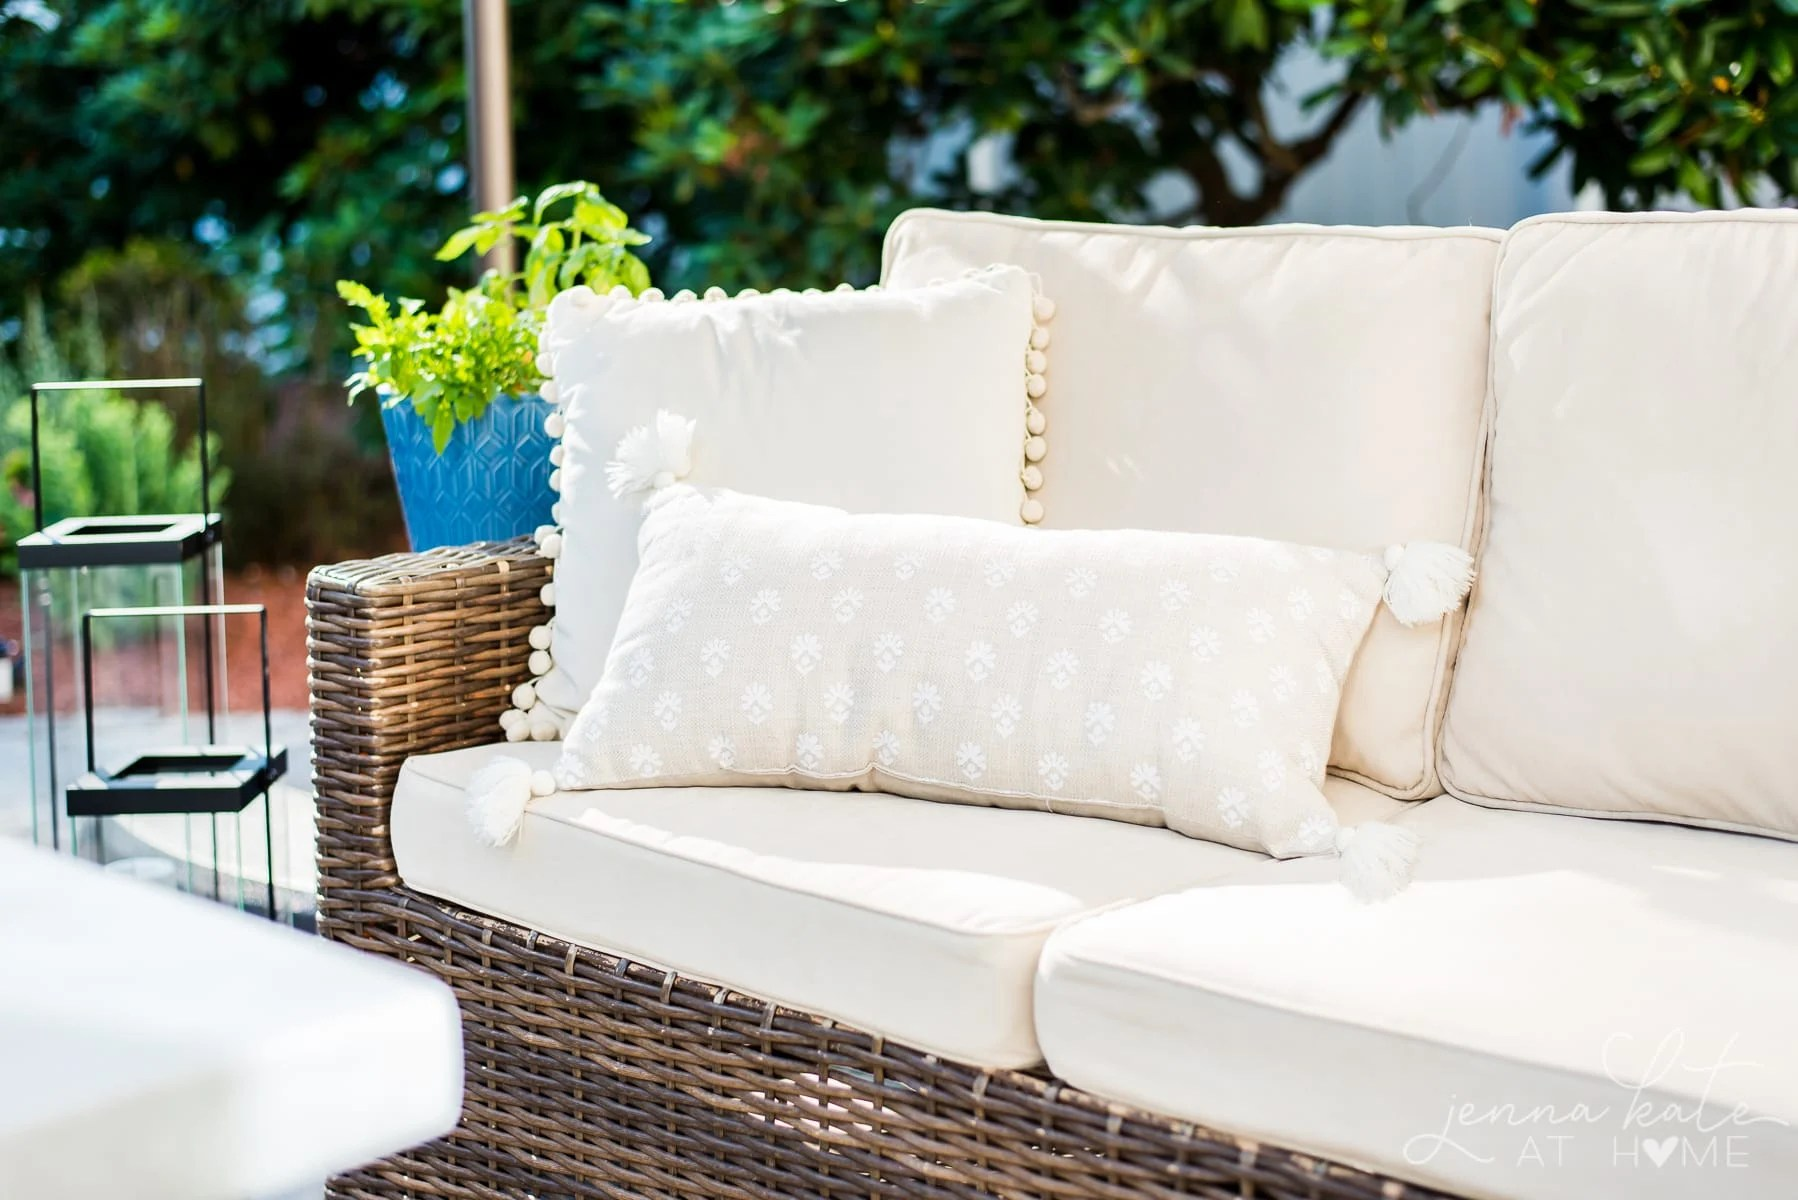 The quick and easy way to clean outdoor patio cushions using a few basic household supplies